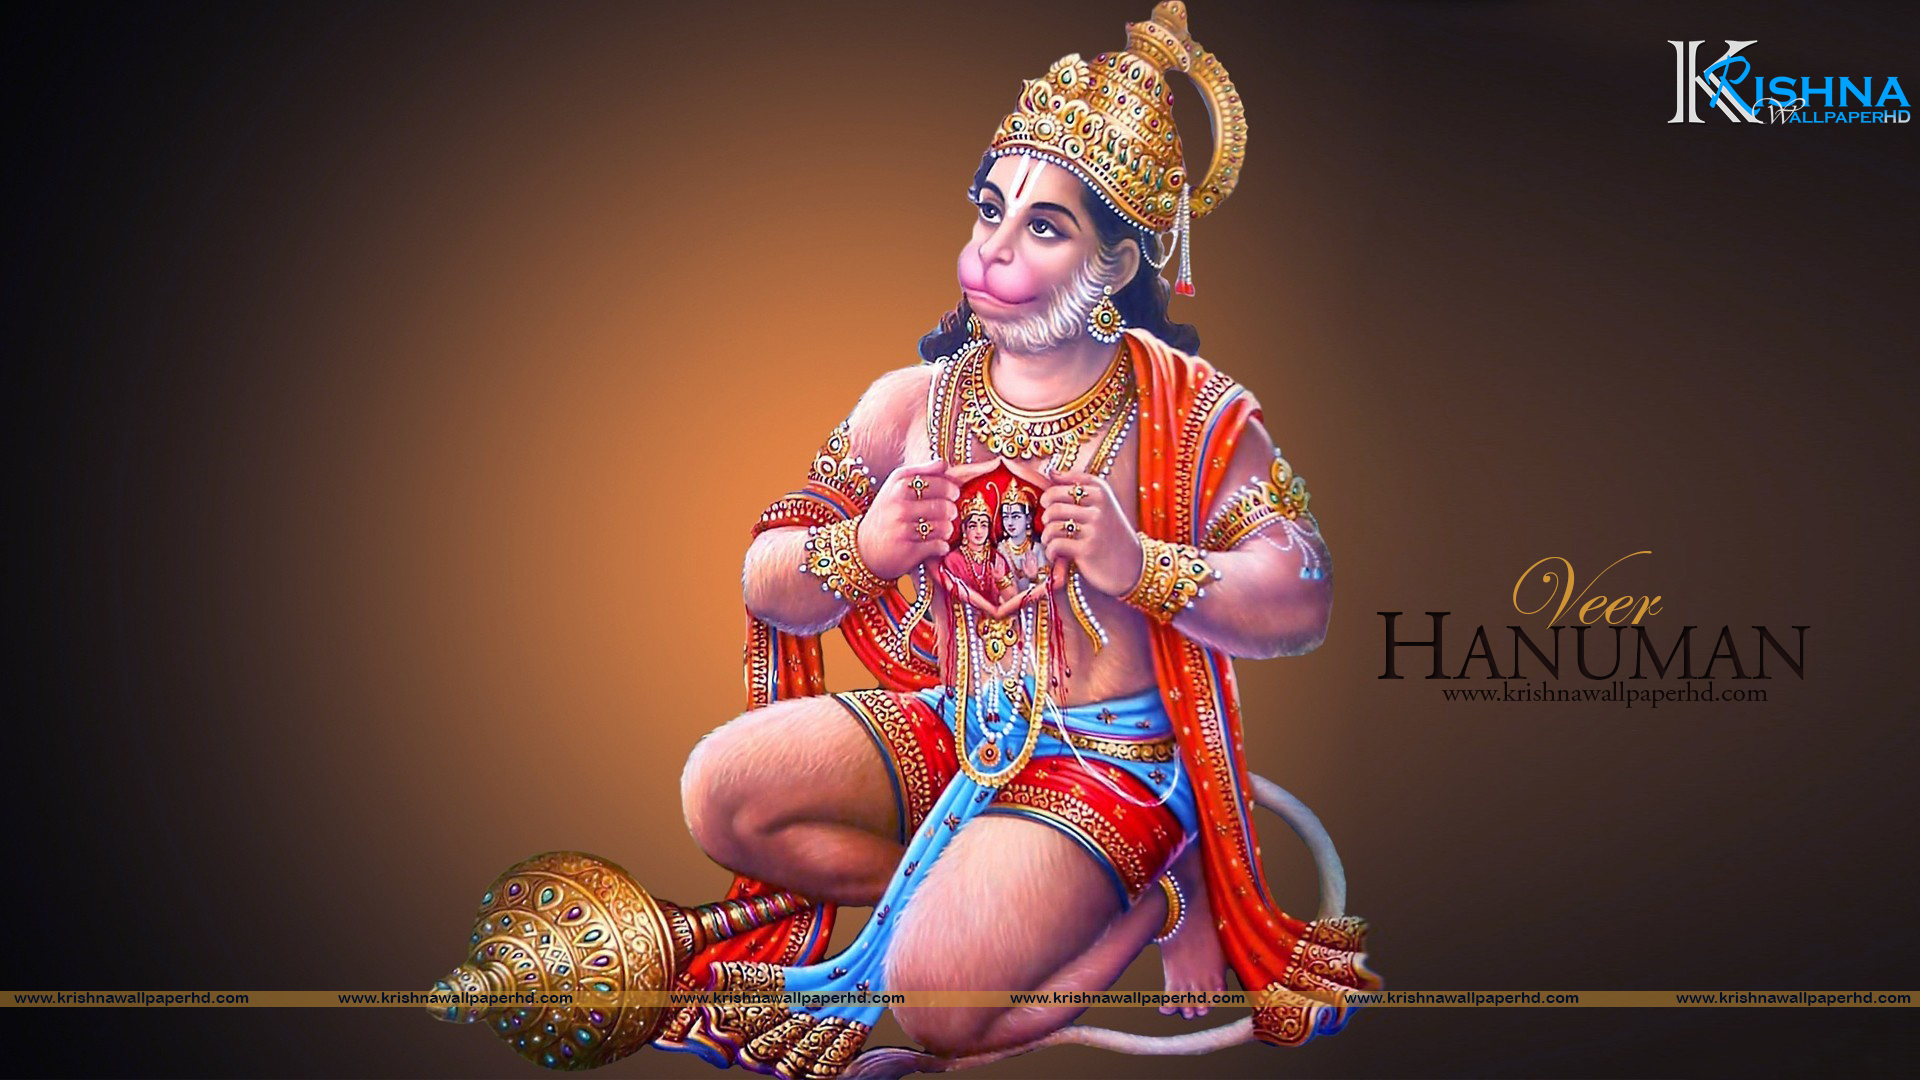 Veer Hanuman HD Wallpaper Free Download